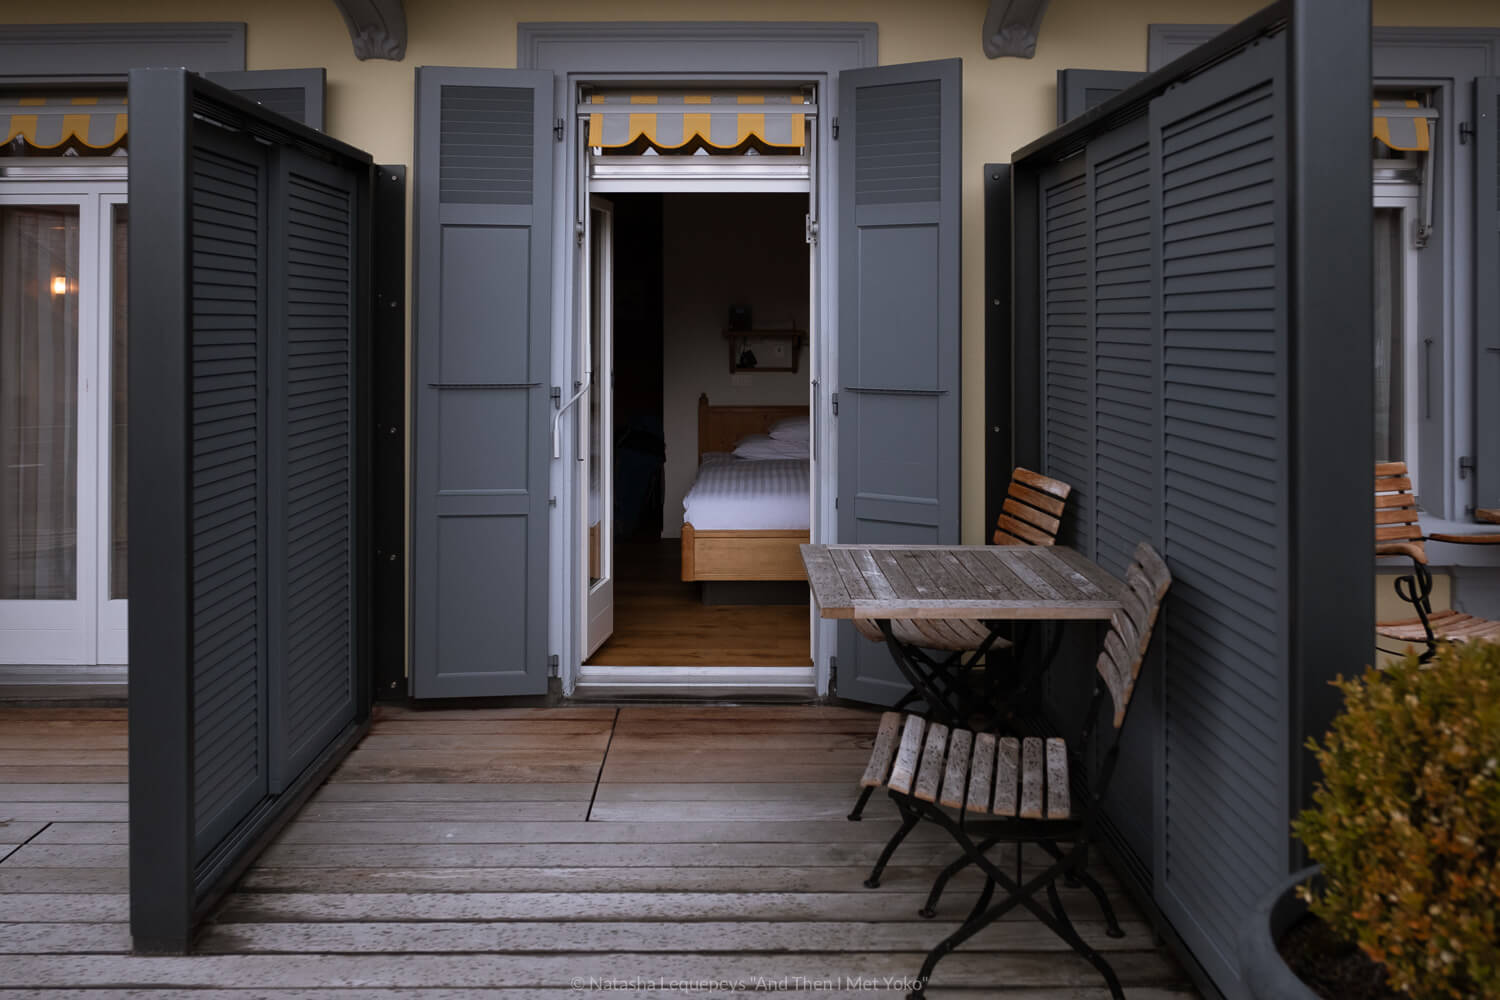 My room and first floor balcony